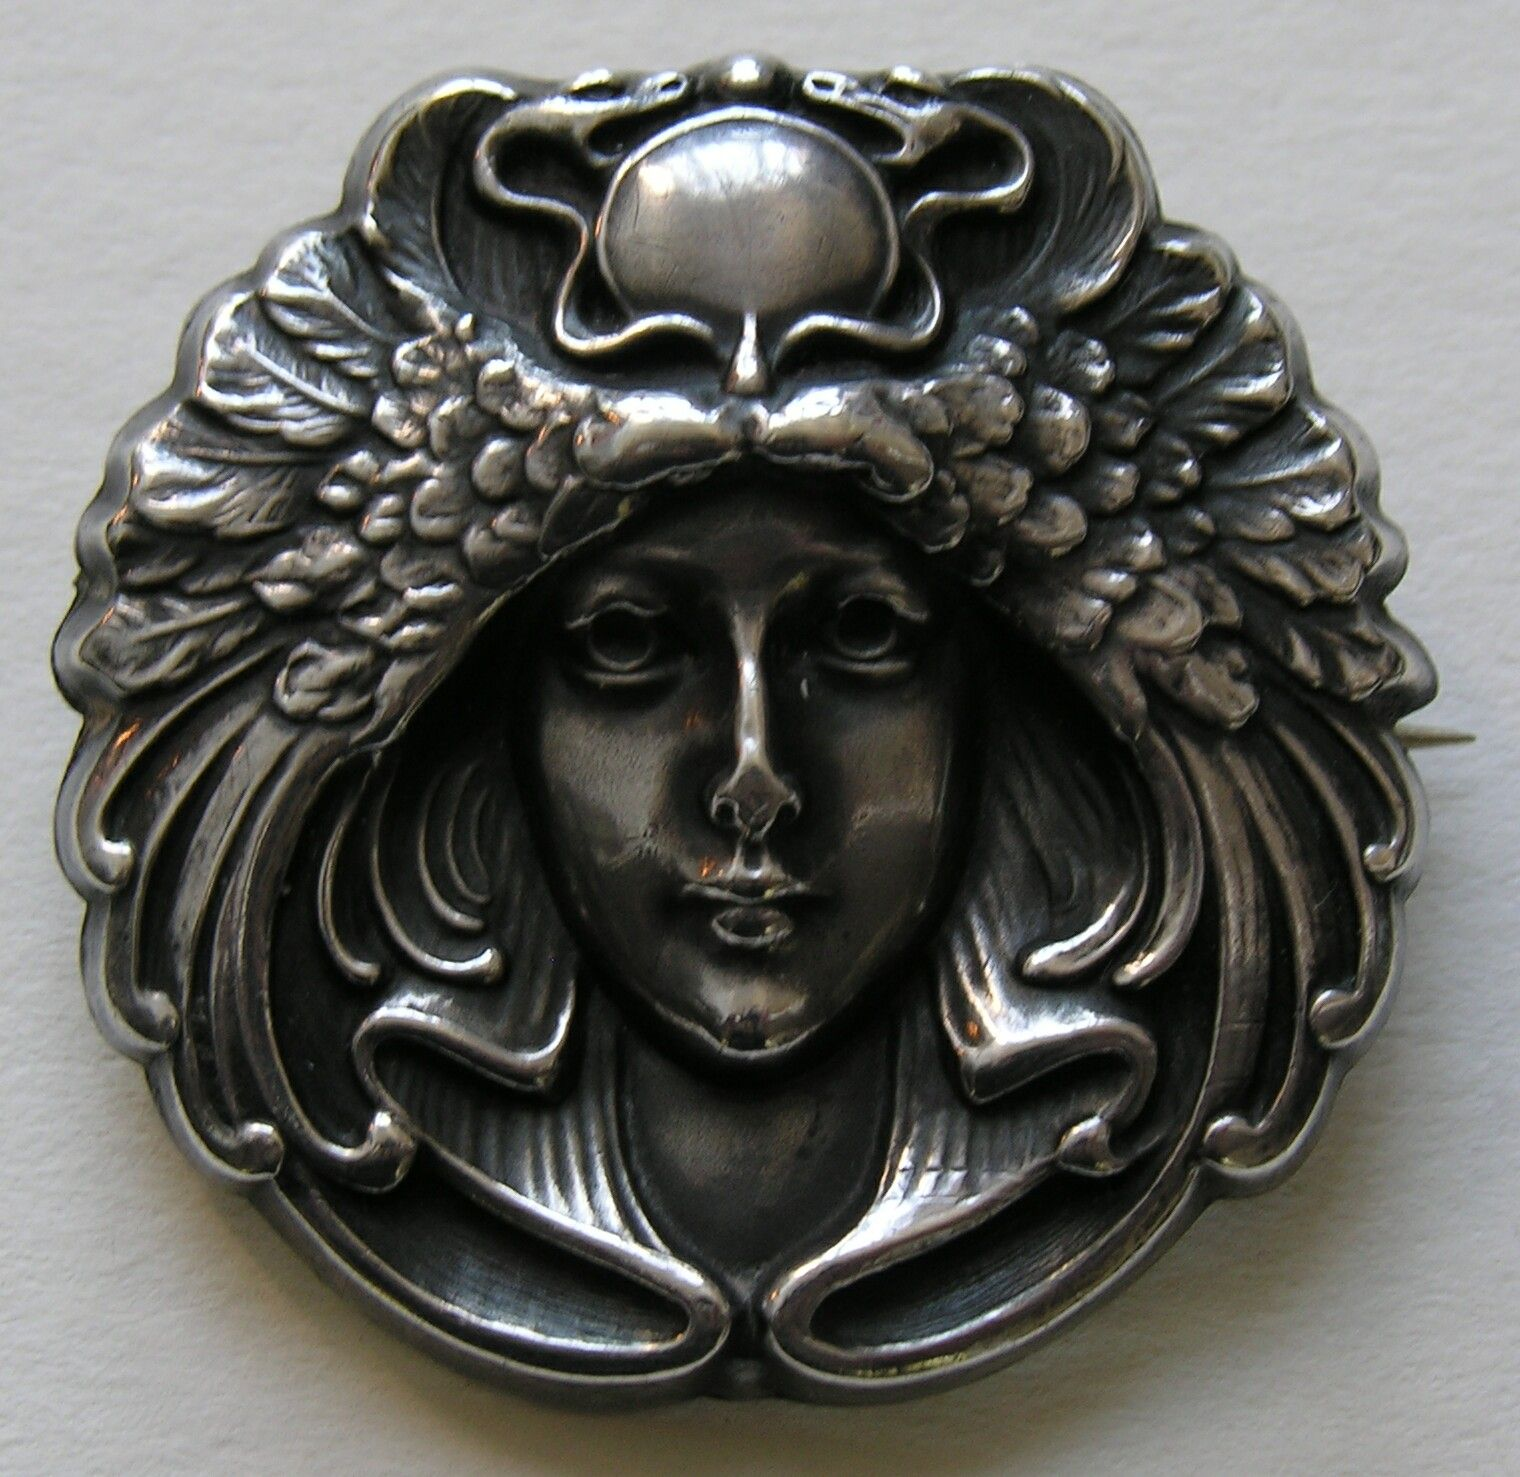 Blackinton Egyptian Revival Lady Sterling Brooch  This striking period brooch (circa 1900) features a lady with an Egyptian winged serpent headdress.